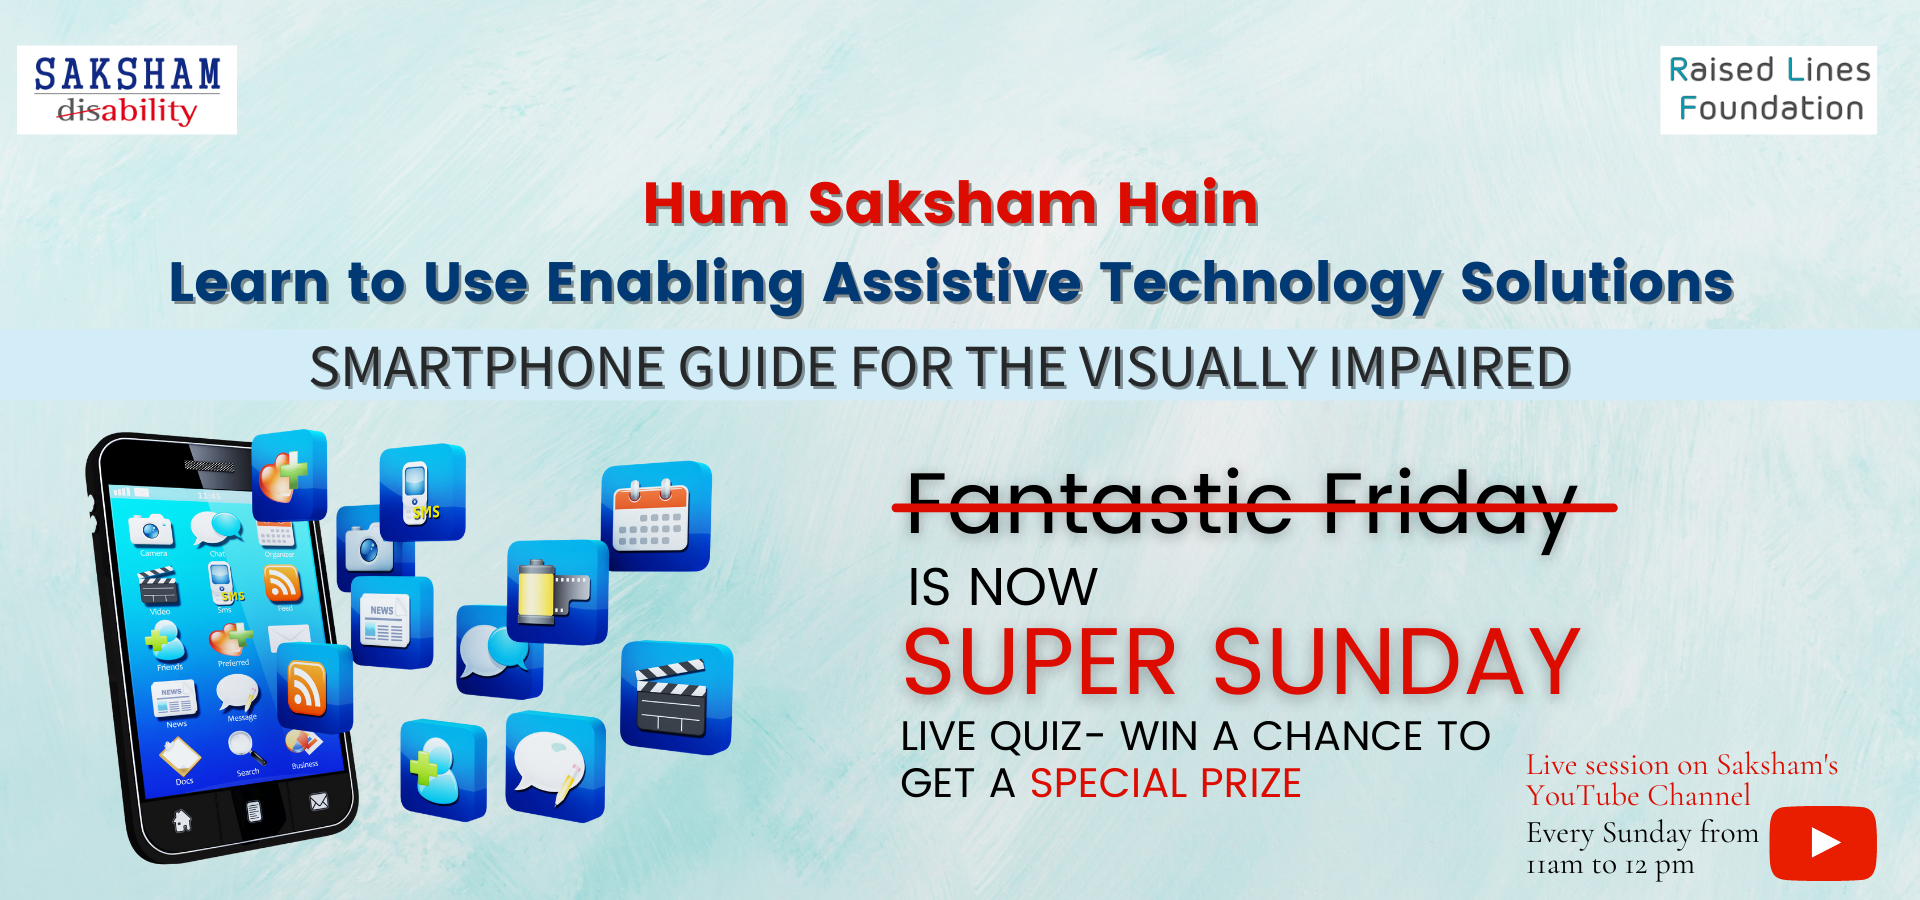 Hum Saksham Hain  Learn to Use Enabling Assistive Technology Solutions- Smartphone Guide for the Visually Impaired  Fantastic Friday IS NOW SUPER SUNDAY  LIVE QUIZ- WIN A CHANCE TO GET A SPECIAL PRIZE  Live session on Saksham's YouTube Channel , Every Sunday from 11 am to 12 pm